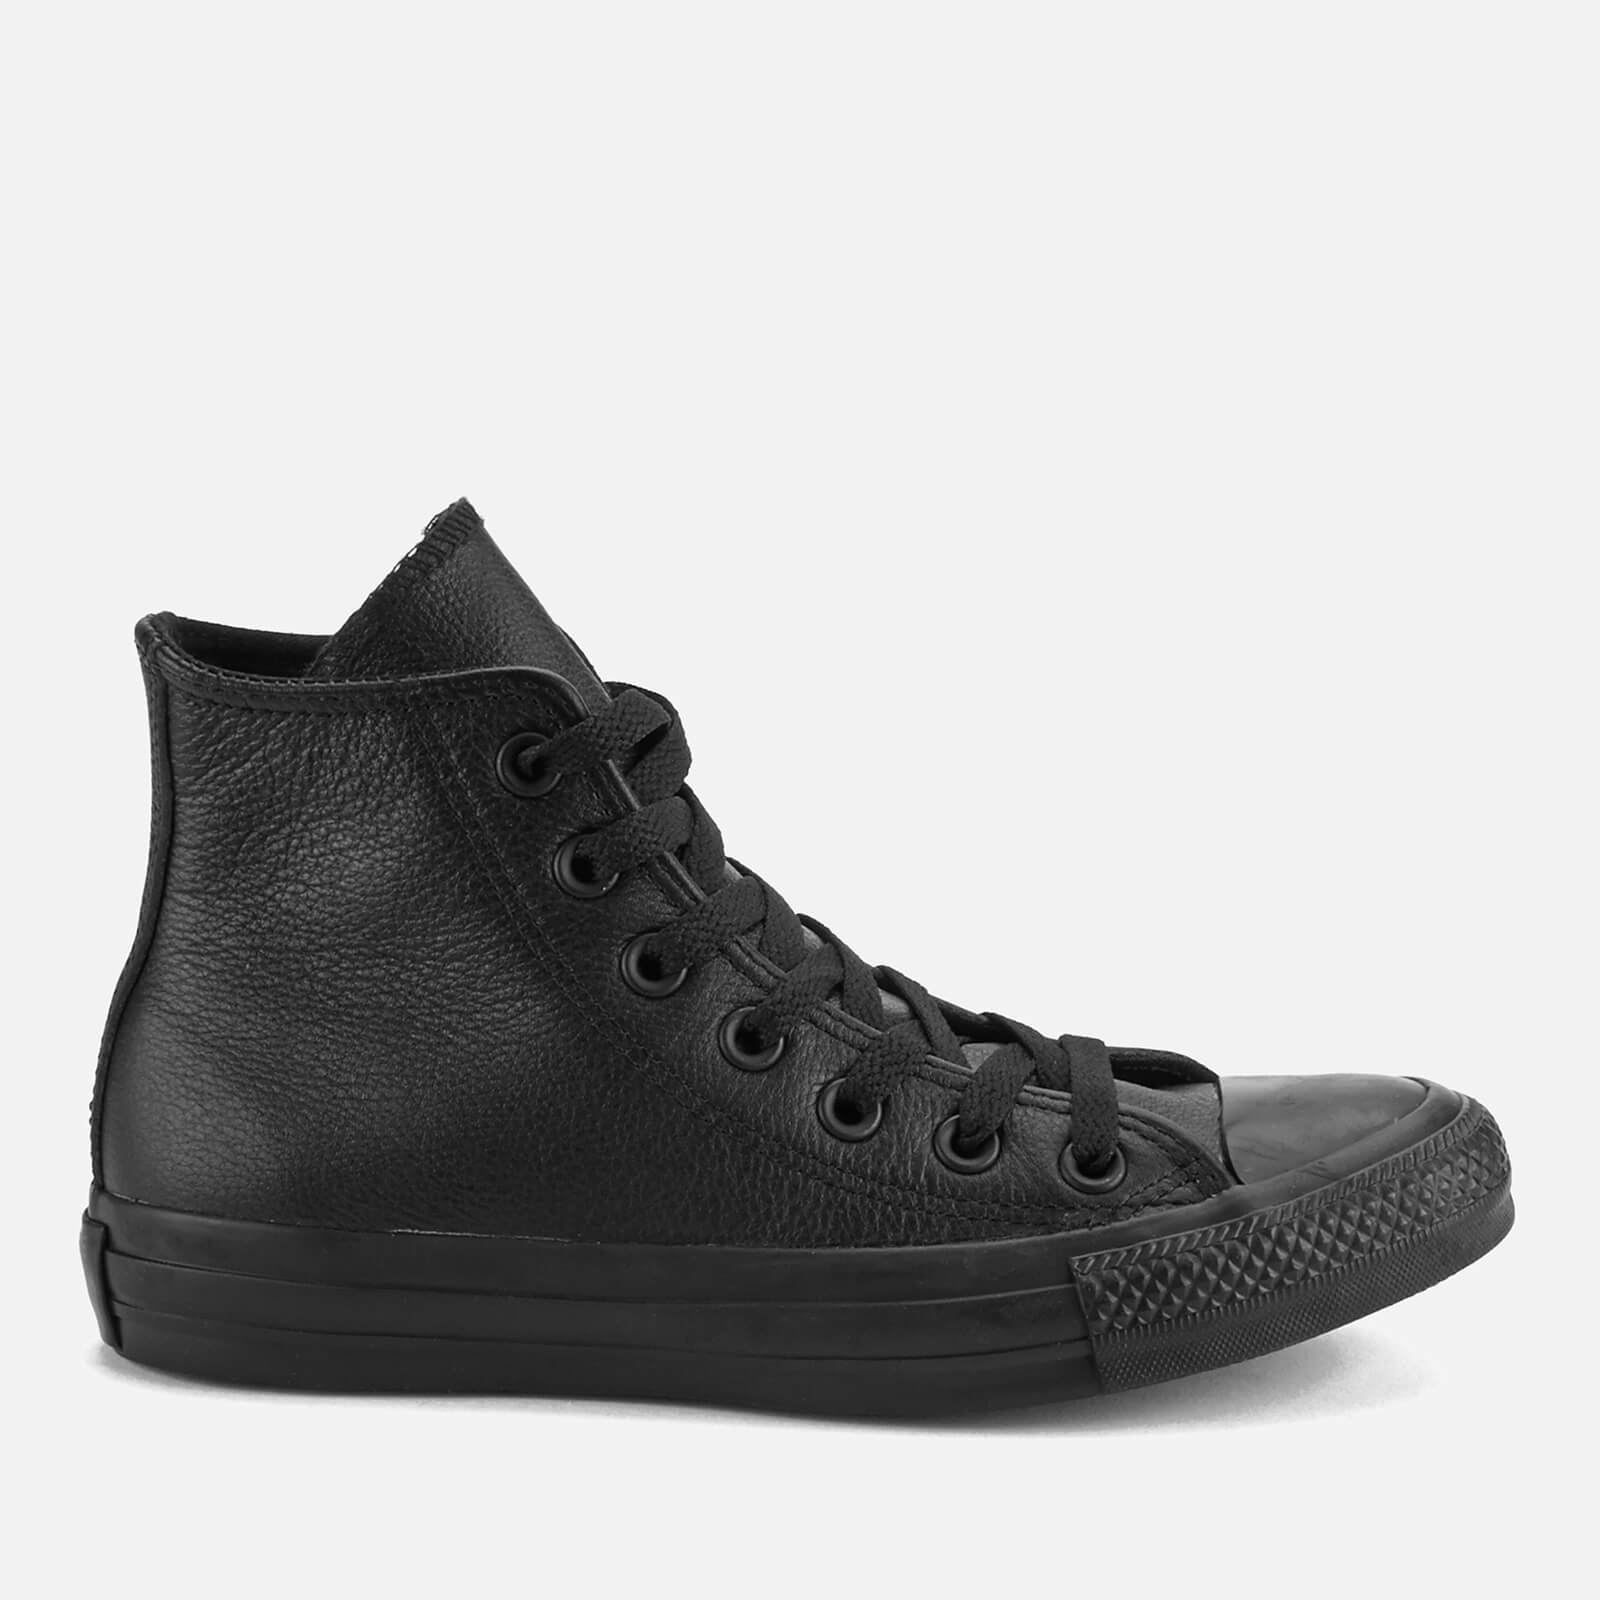 Converse Chuck Taylor All Star Leather Hi-Top Trainers - Black Mono - UK 4